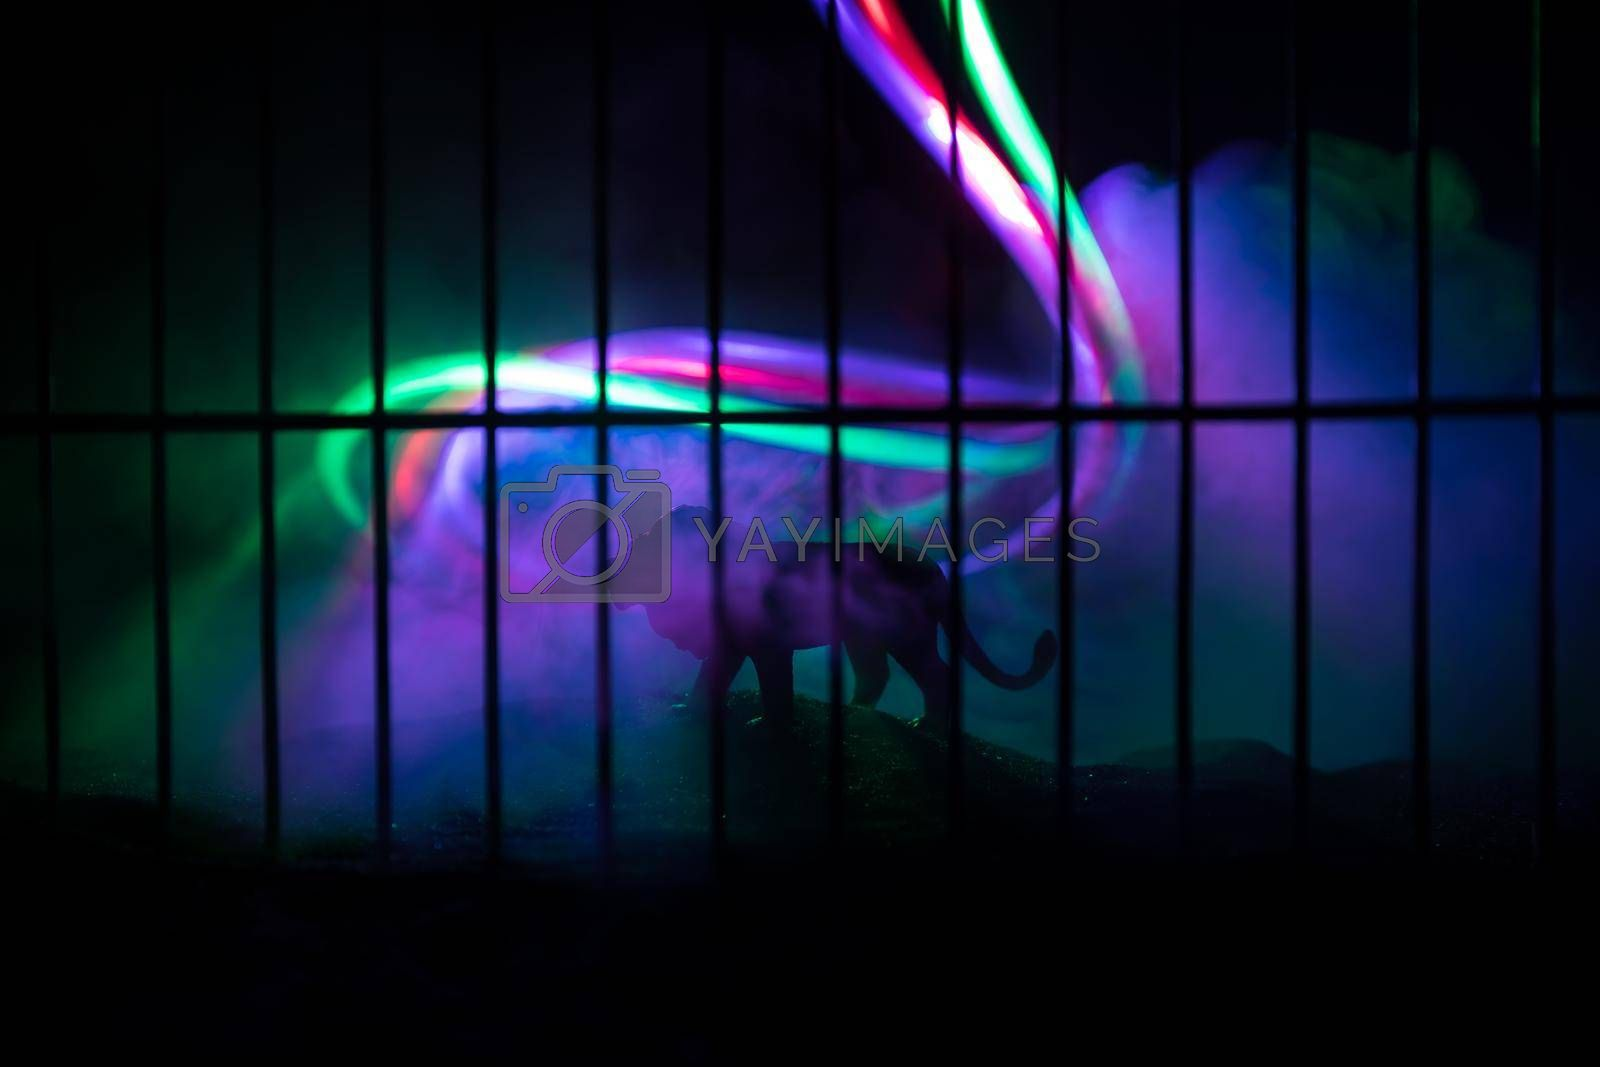 Silhouette of a lion miniature standing in a zoo cage dreams of freedom. Creative decoration with colorful backlight with fog. Selective focus